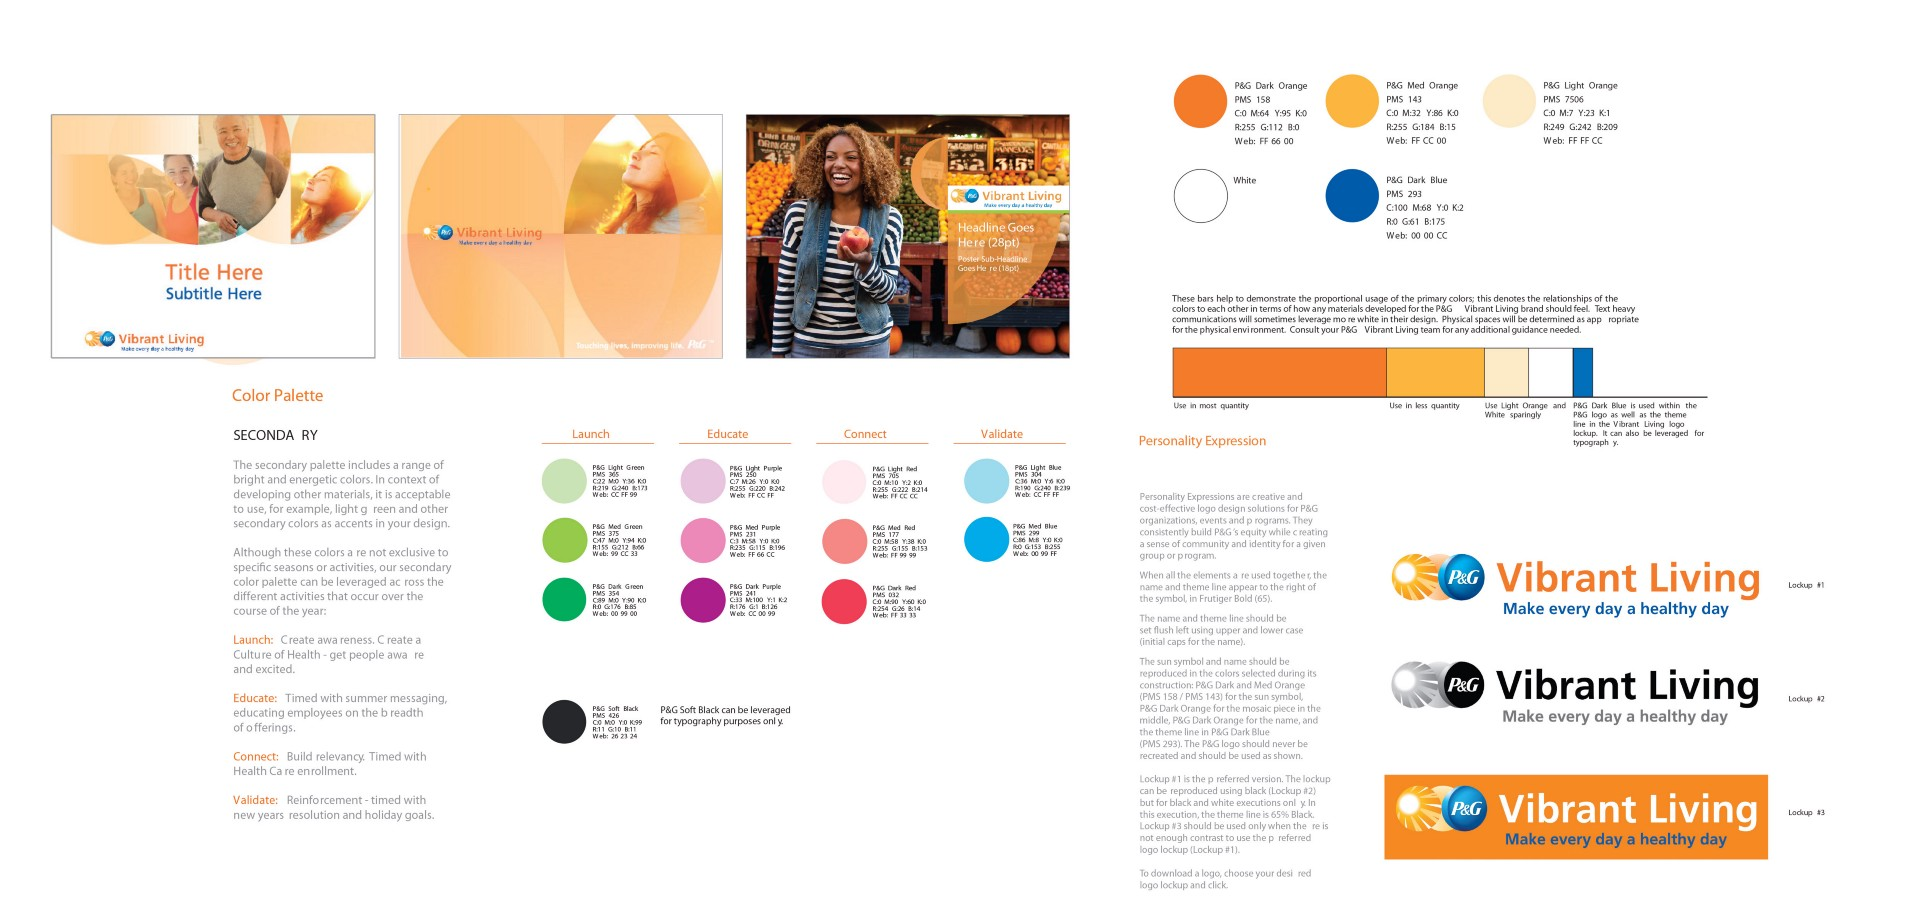 Vibrant Living Brand Identity U2013 Nicholas Fields U2013 Medium